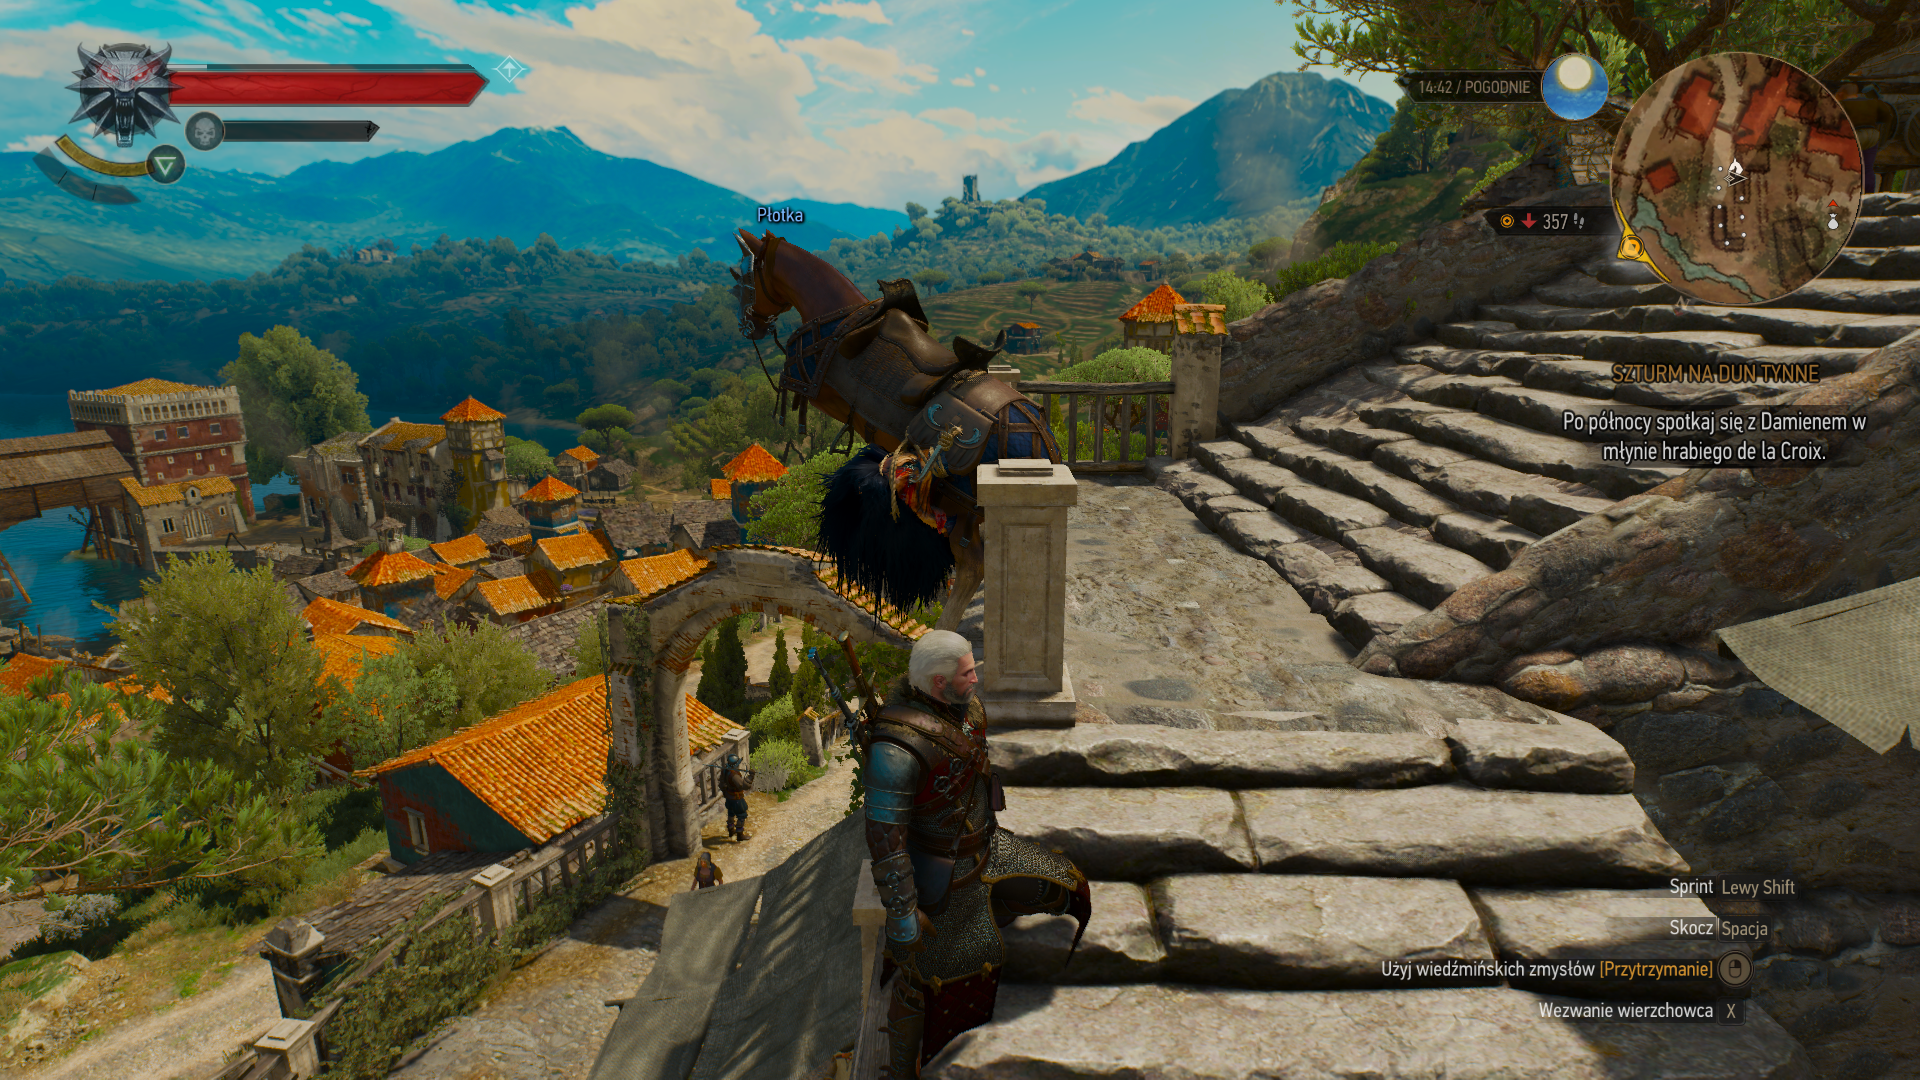 The Witcher 3 29.12.2018 18_48_28.png - Witcher 3: Wild Hunt, the